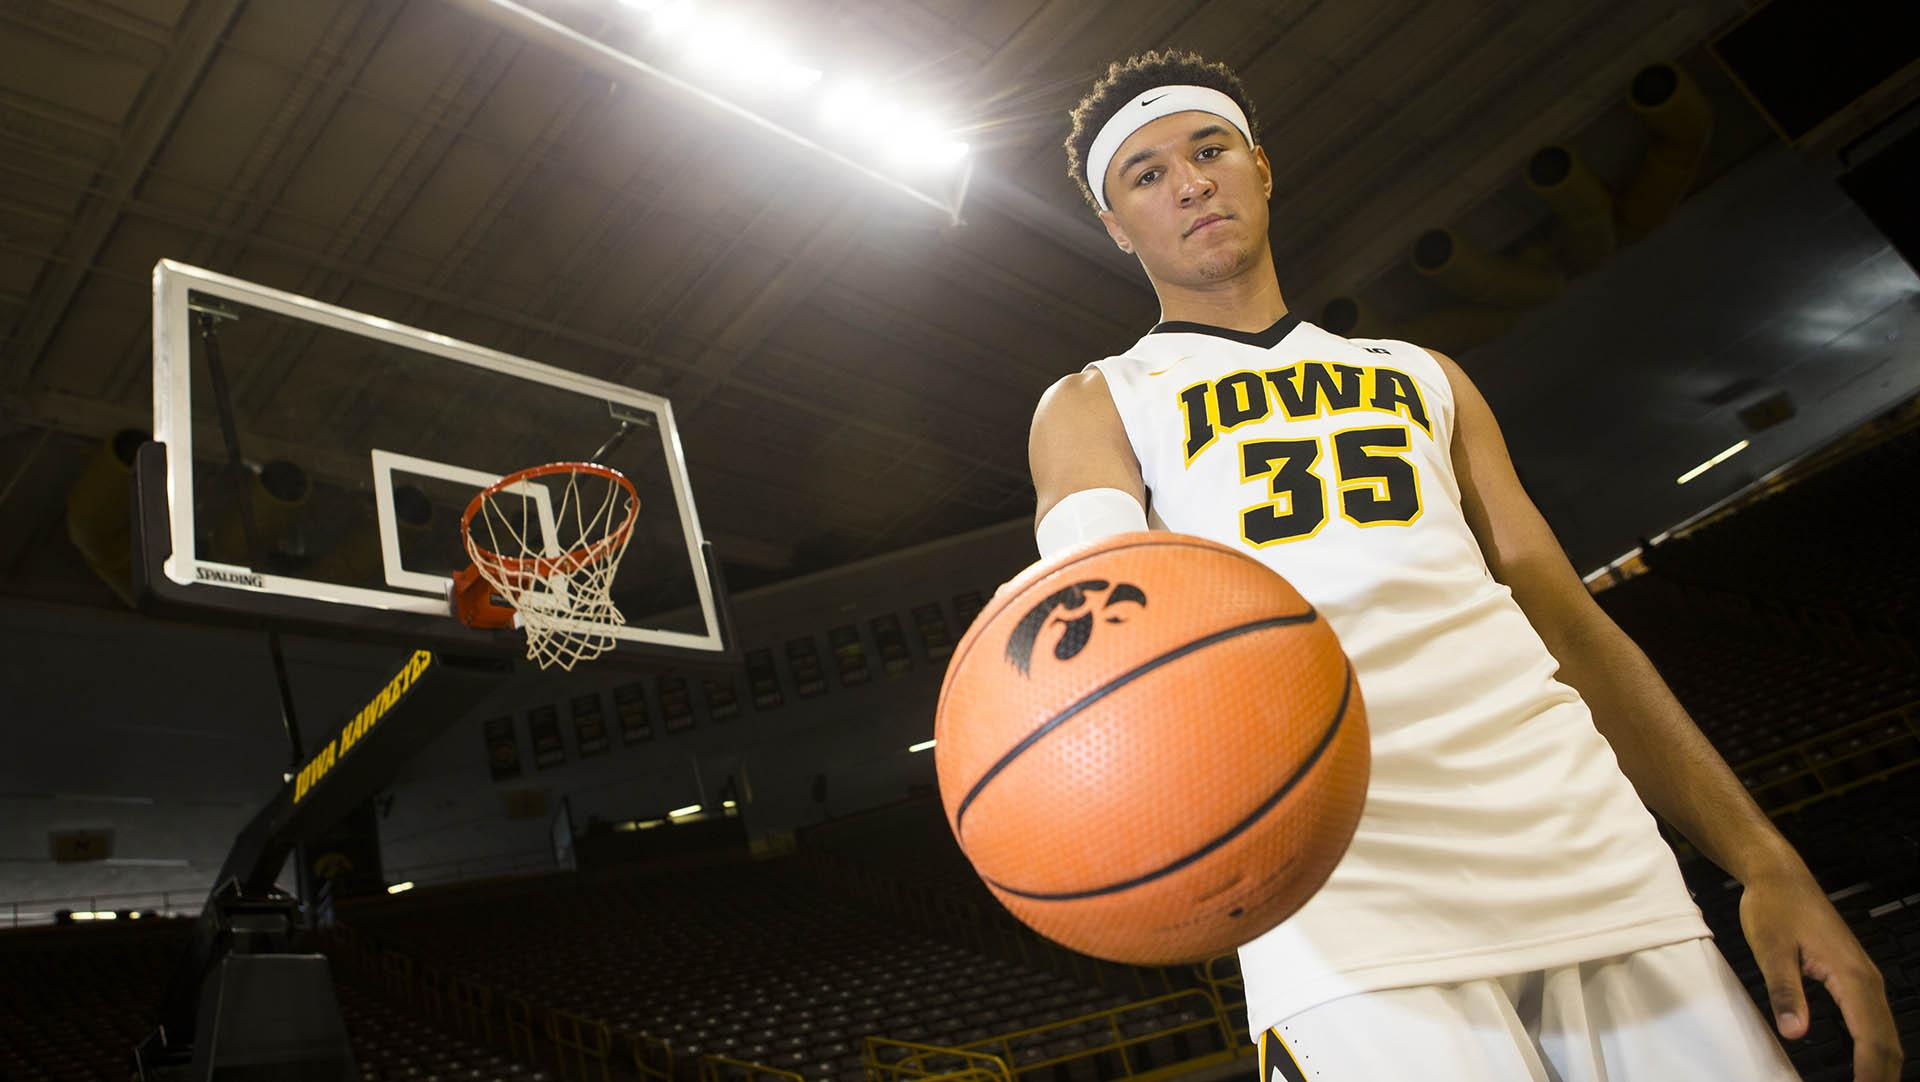 Iowa forward Cordell Pemsl poses for a portrait during men's basketball media day in Carver-Hawkeye Arena on Monday, Oct. 16, 2017. The Hawkeyes open up their season with an exhibition game against William Jewell College on Friday, Oct. 27. at 7 p.m. in Carver. (Joseph Cress/The Daily Iowan)